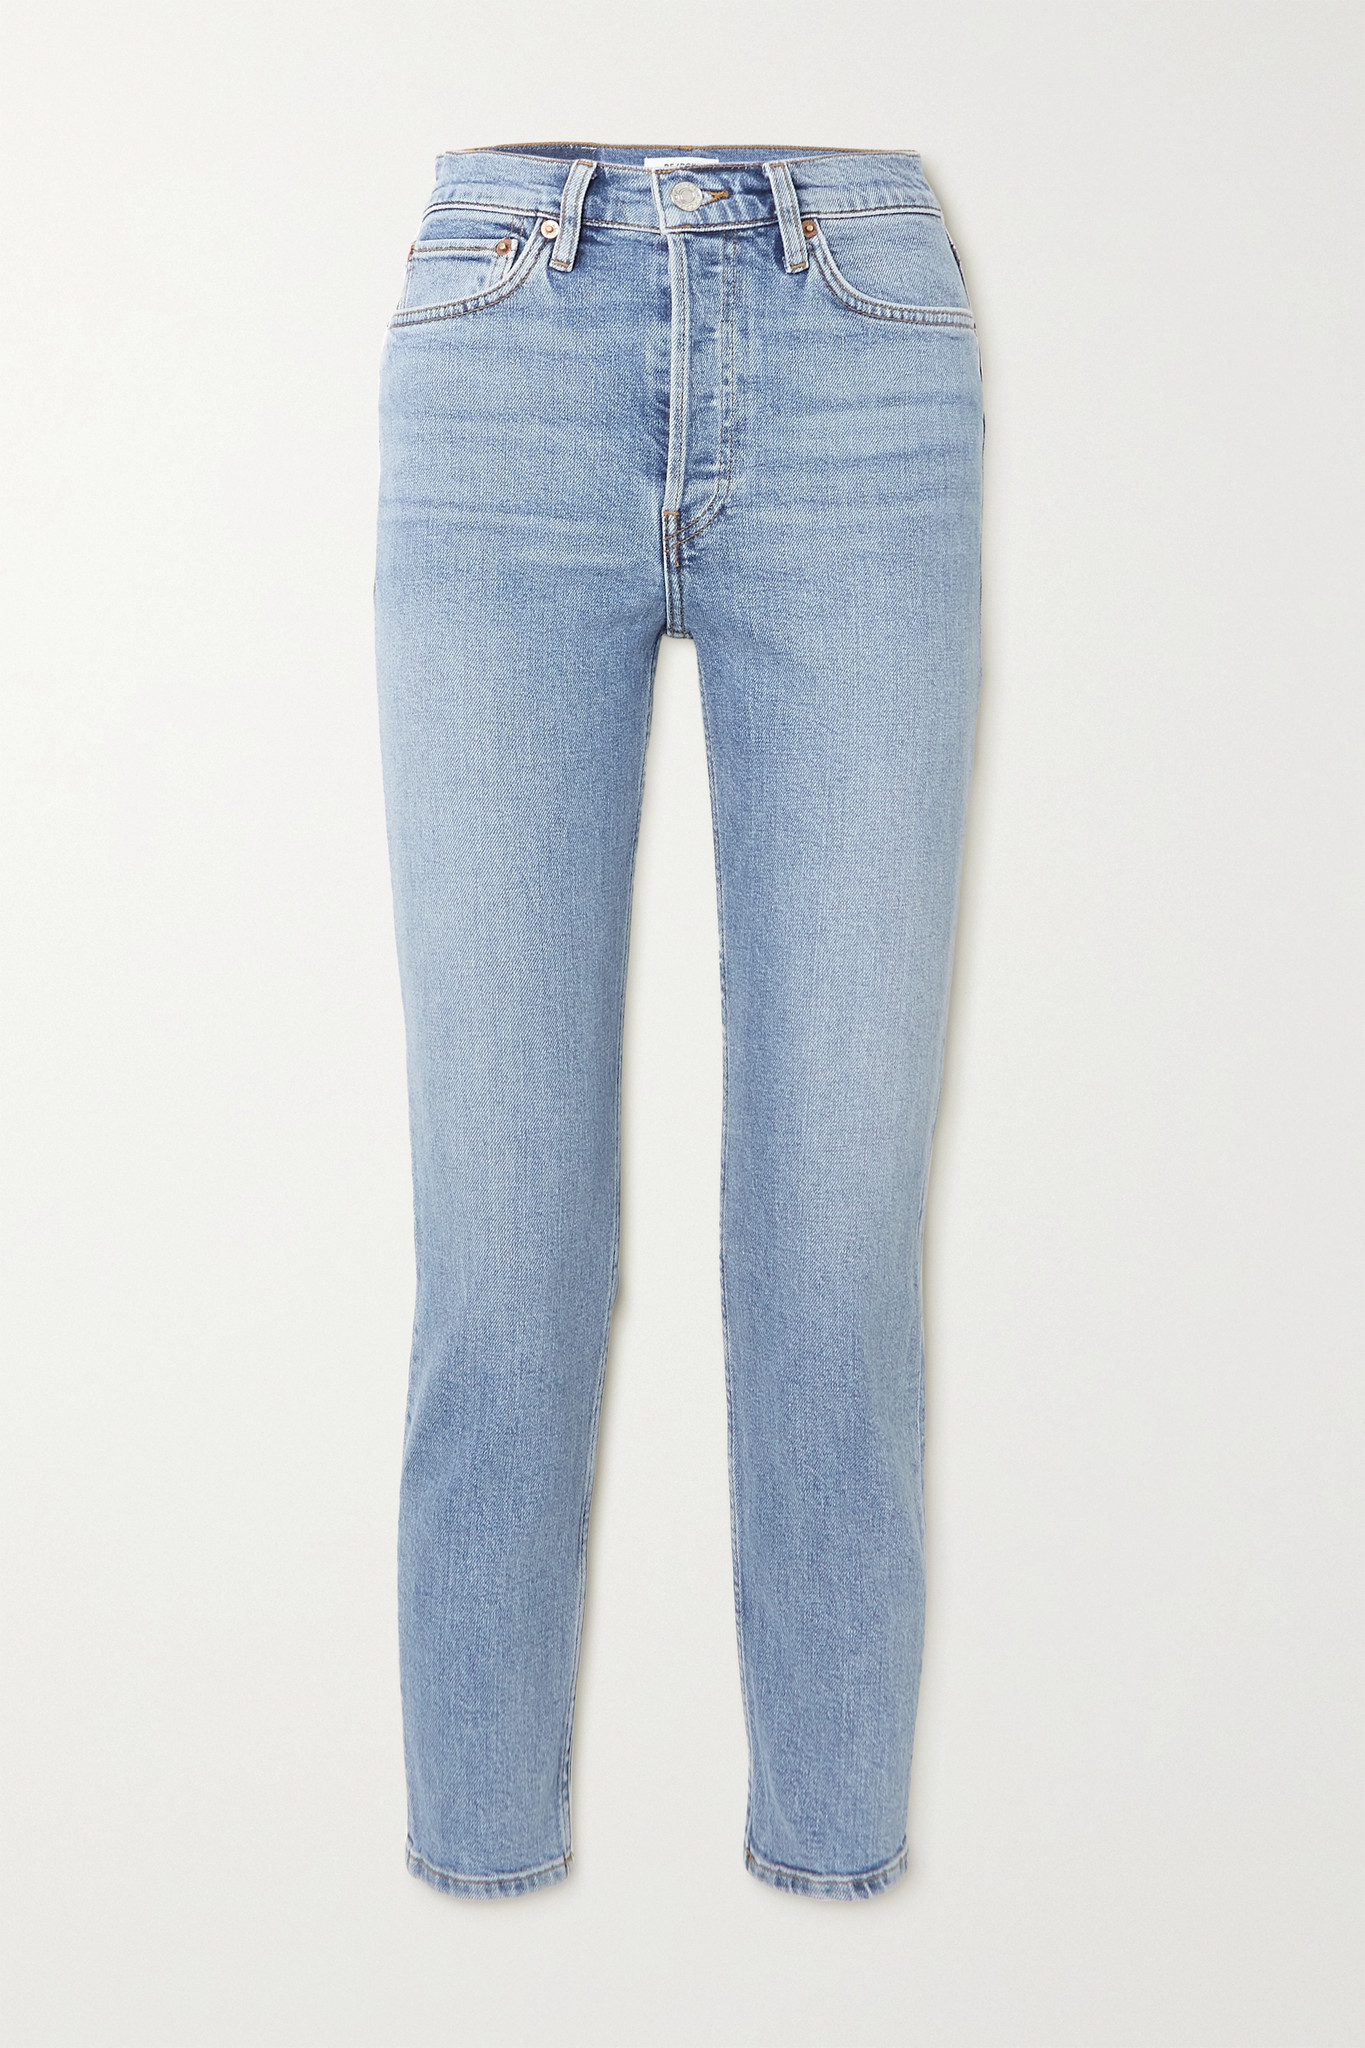 RE/DONE - 90s Comfort Stretch High-rise Ankle Crop Skinny Jeans - Blue - 30